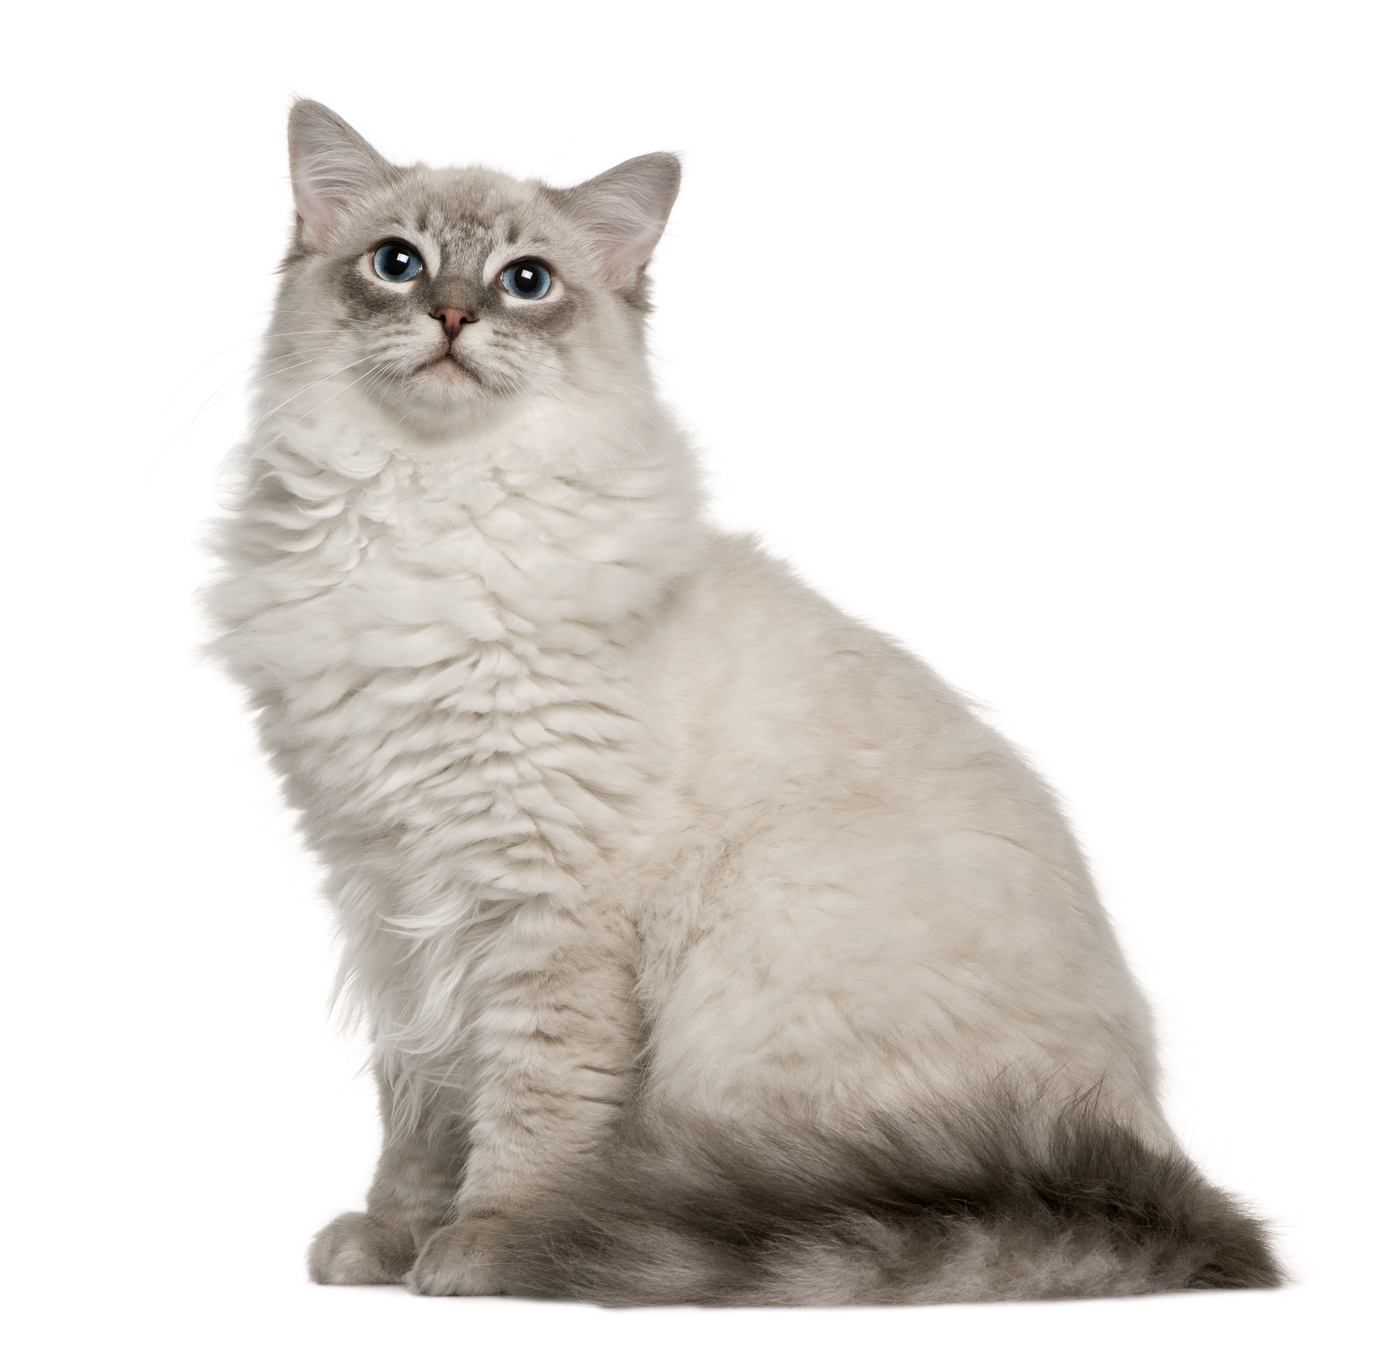 Genetic Diseases and Cat Breeds